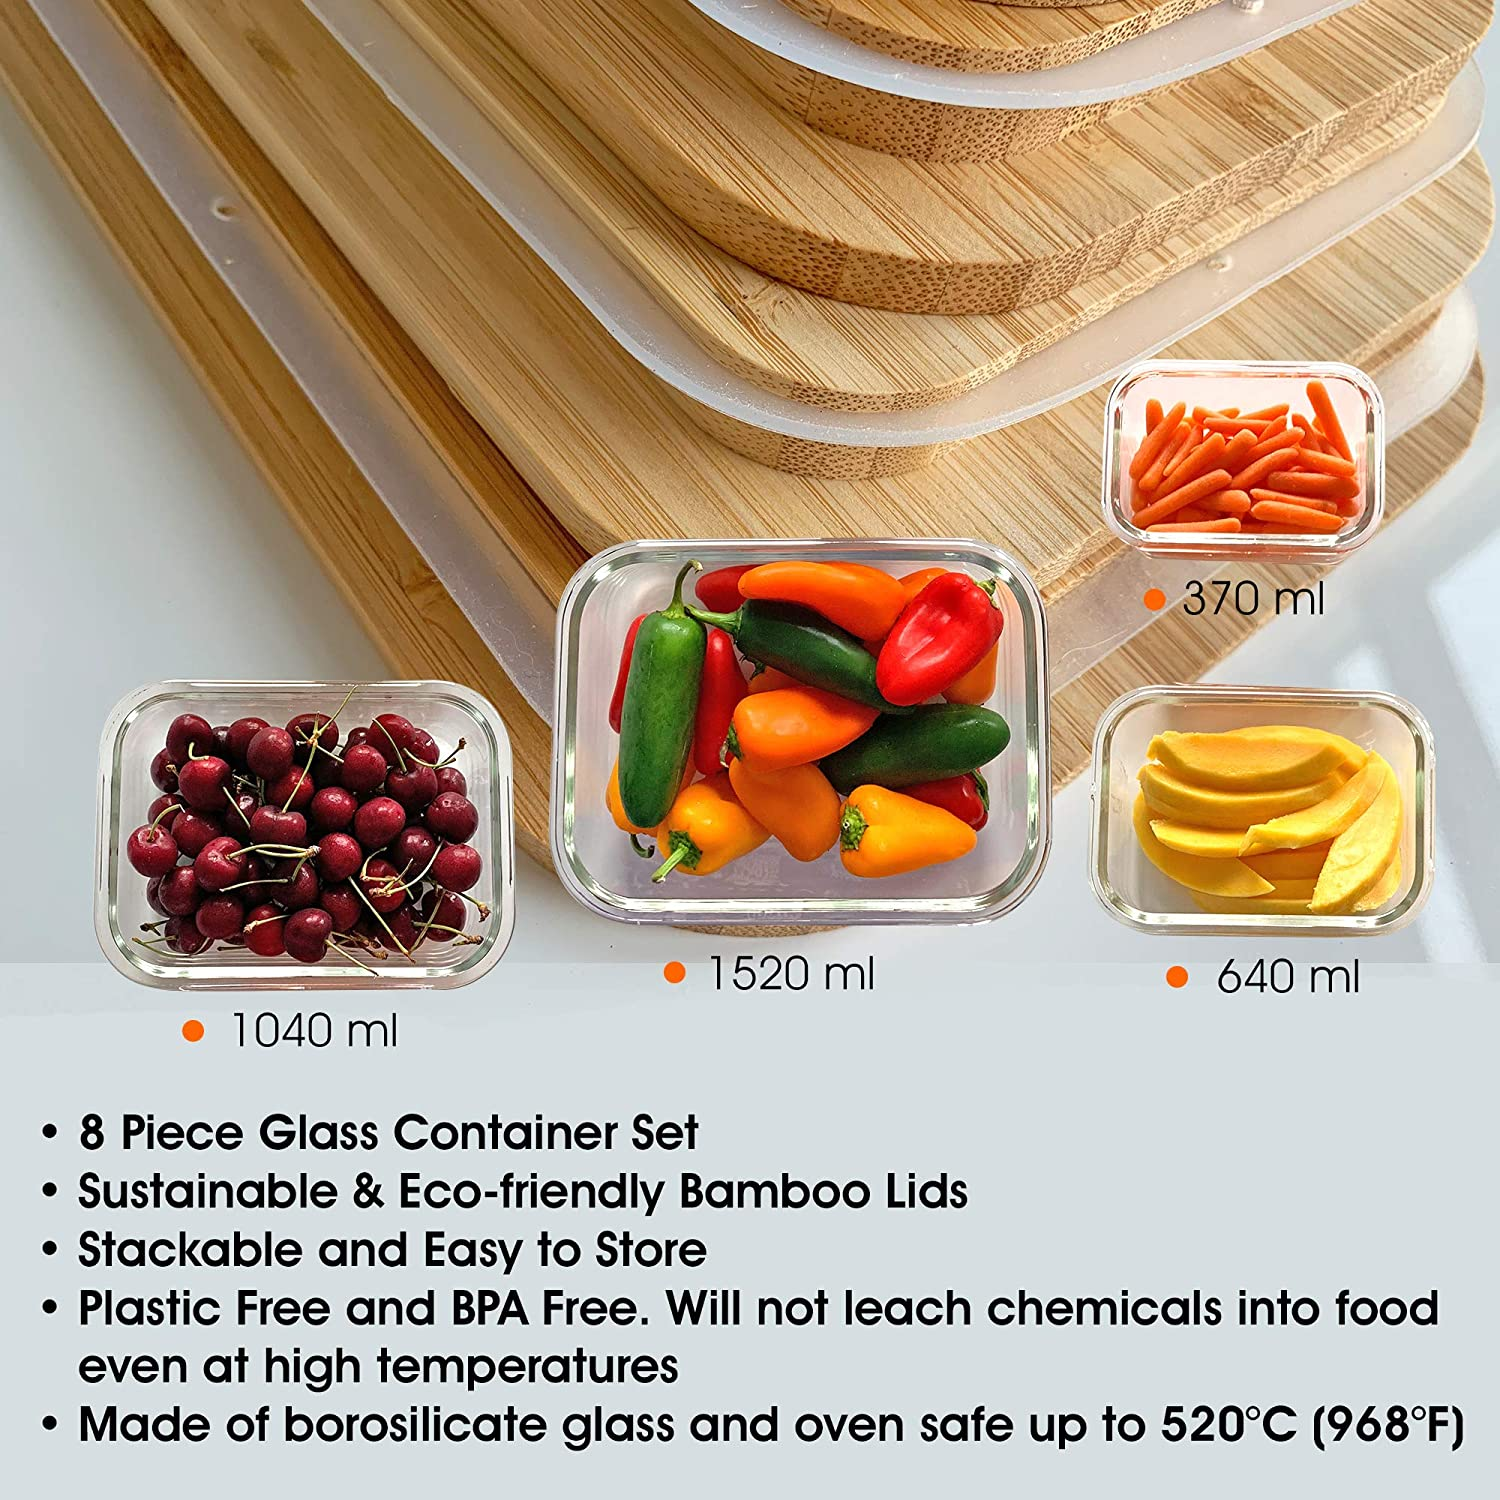 Glass Food Storage Containers with Bamboo Lids - 4 pc set - Vedessi